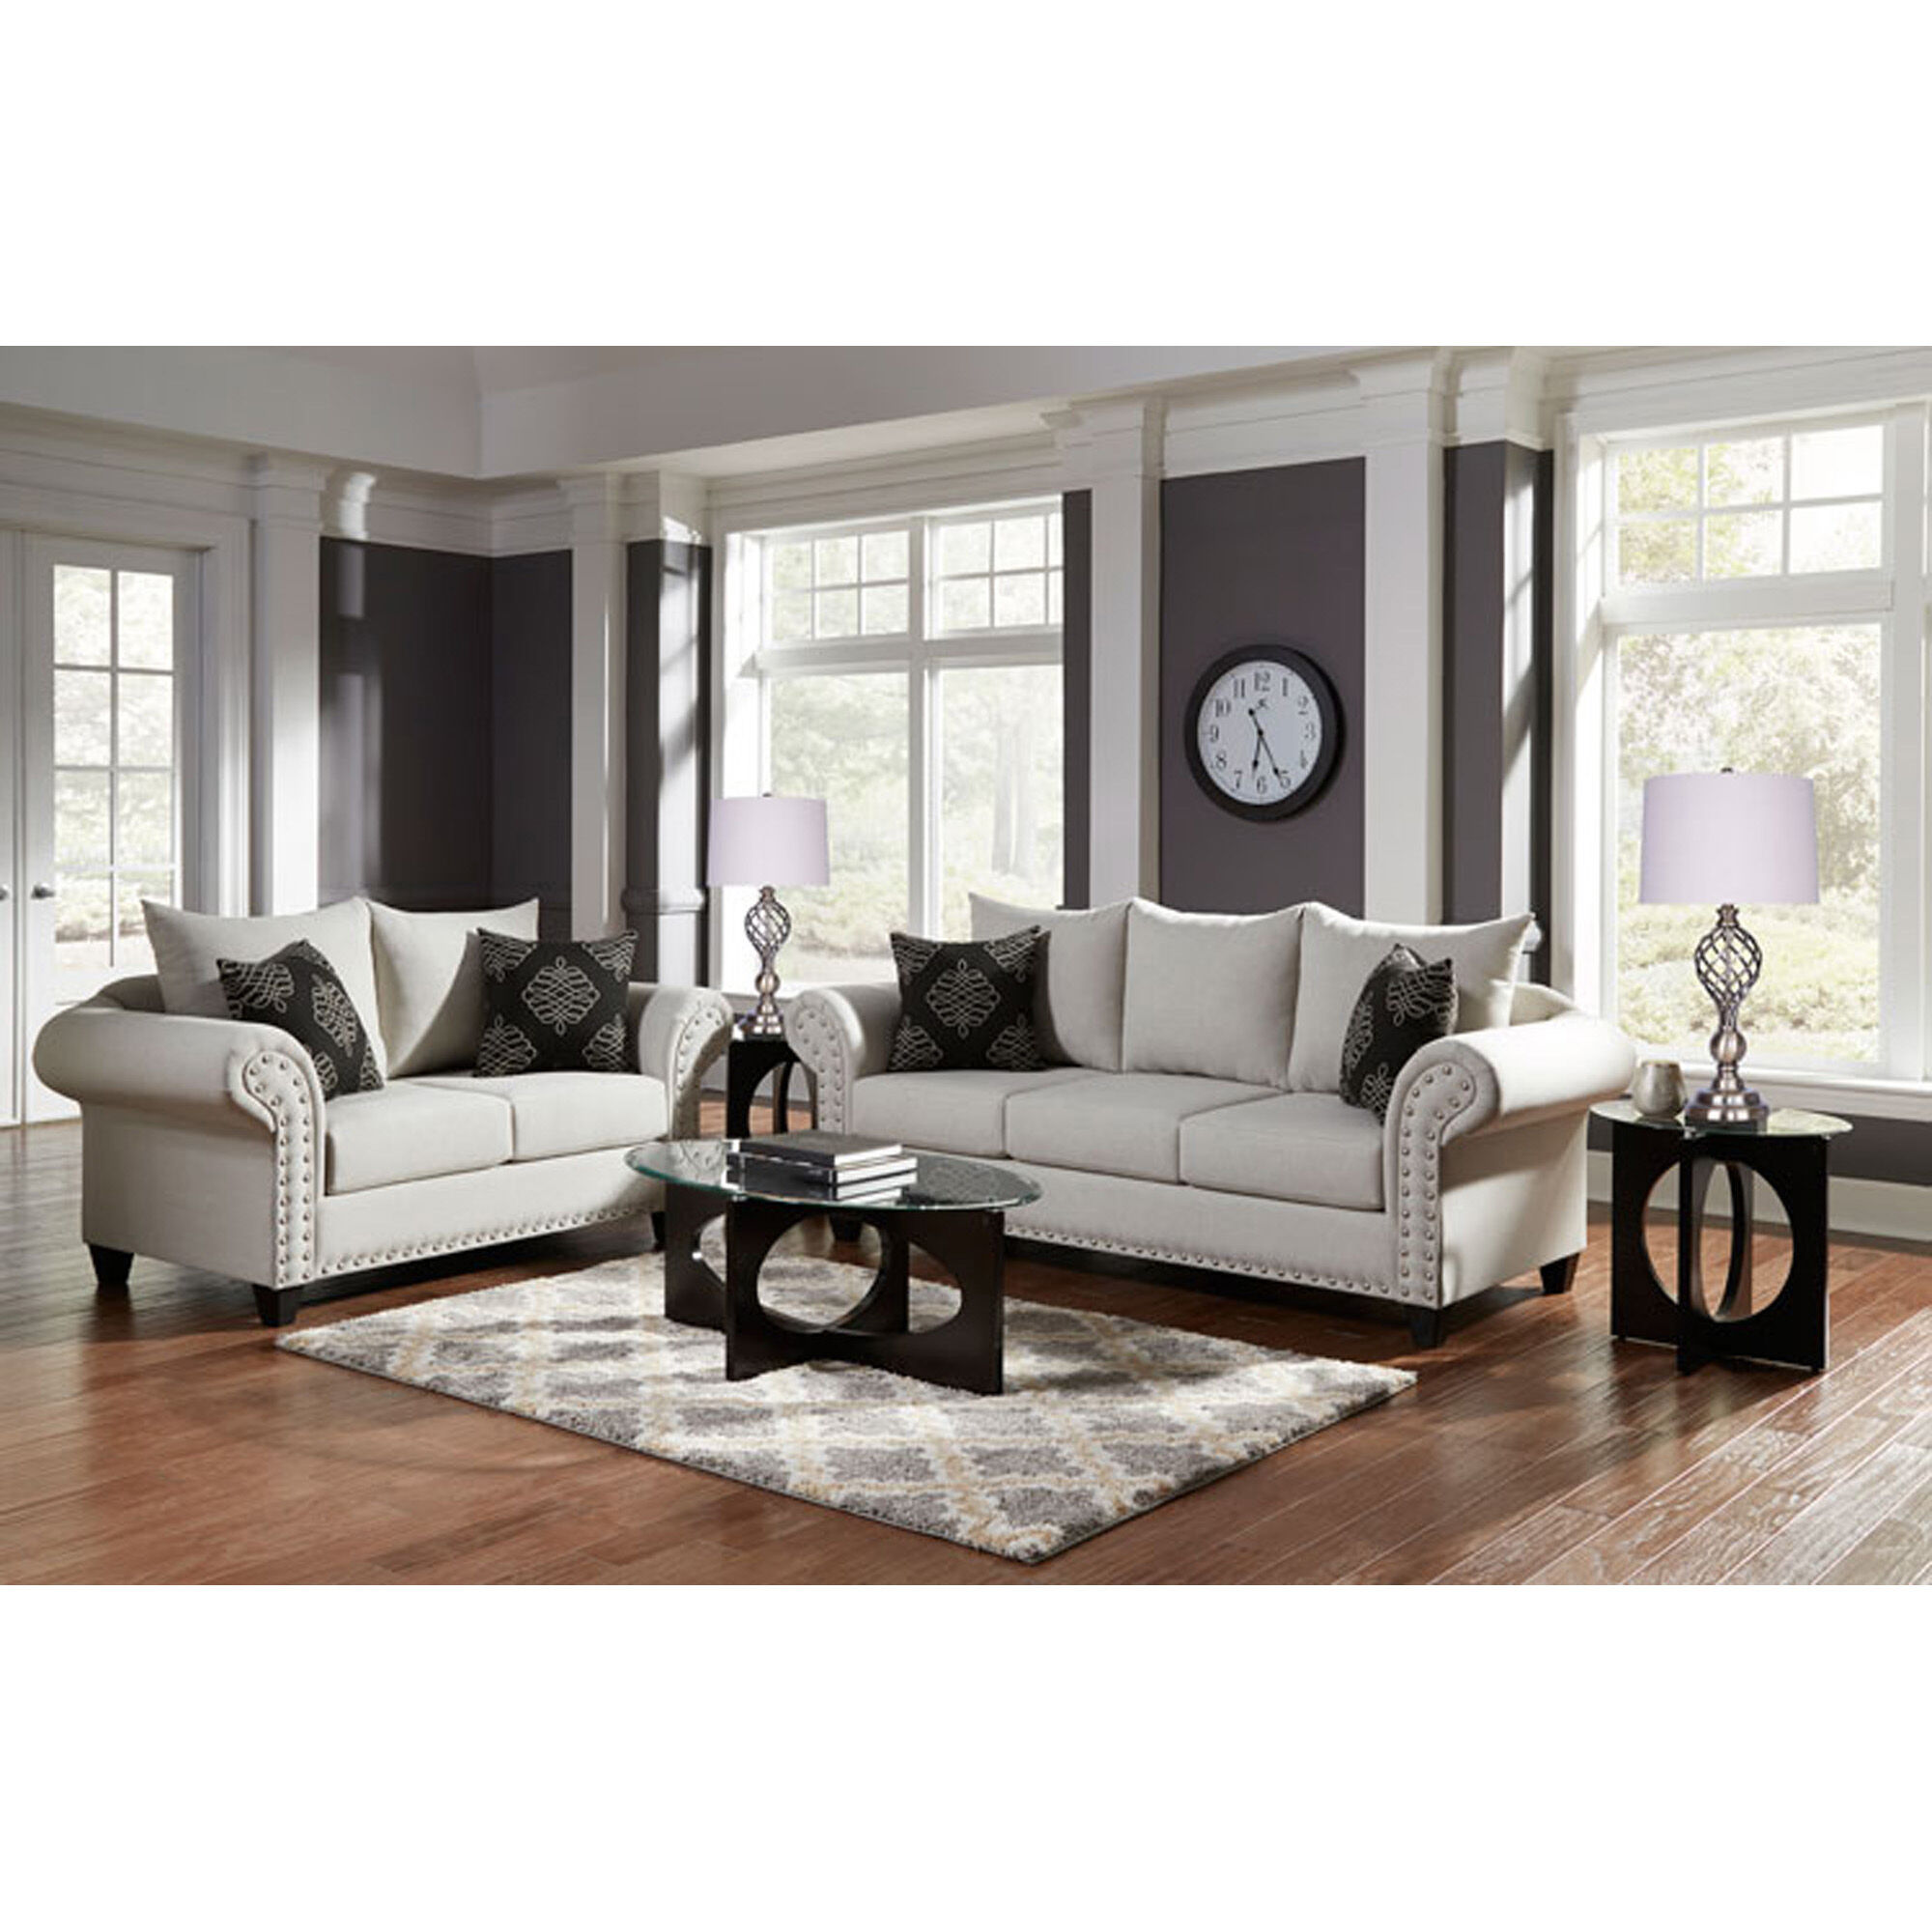 Woodhaven Industries Living Room Sets 7Piece Beverly